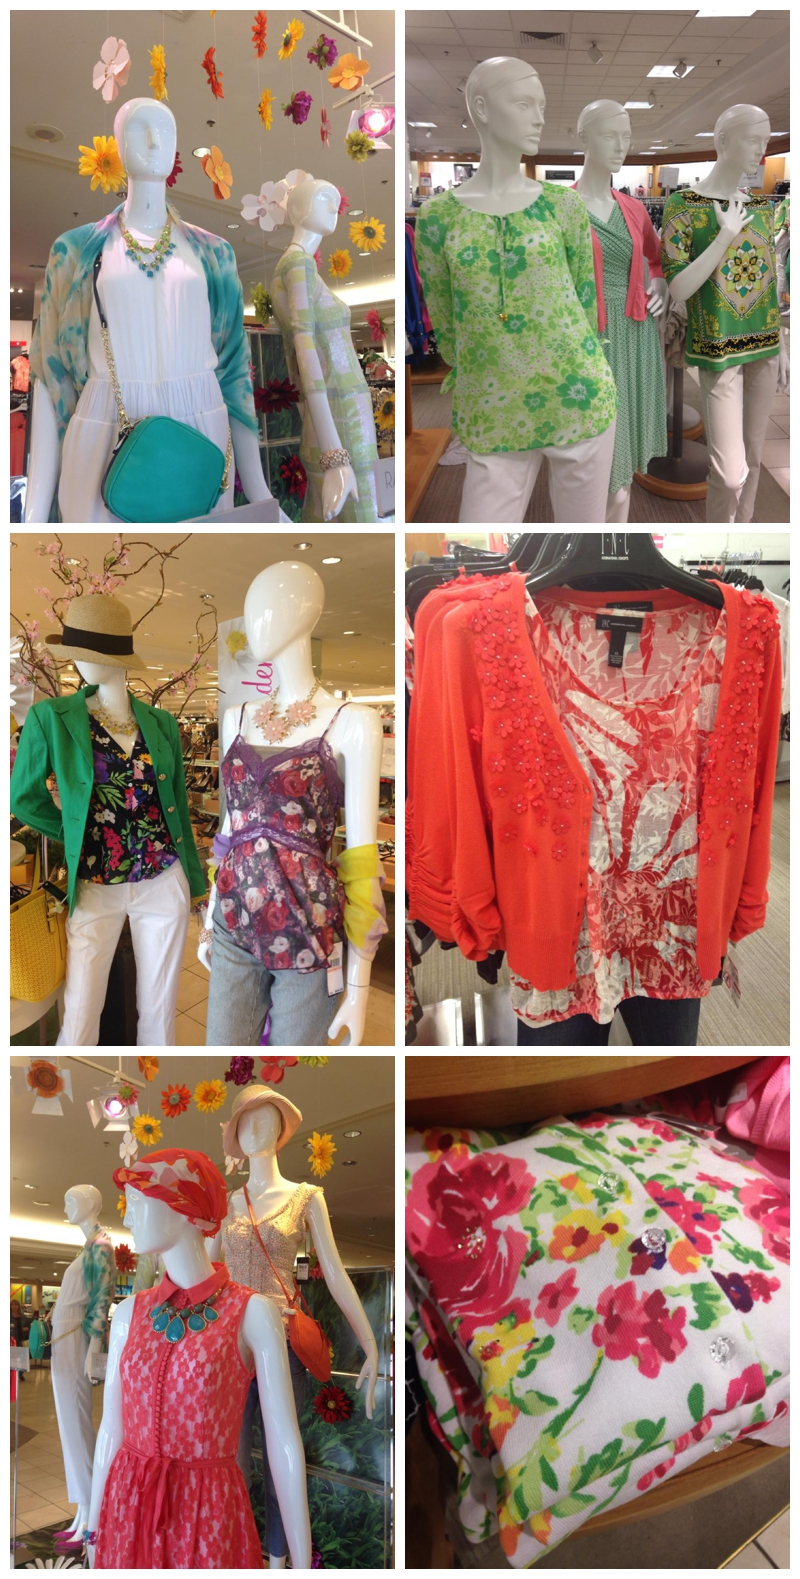 Floral Fashions at Macy's The Secret Garden Event